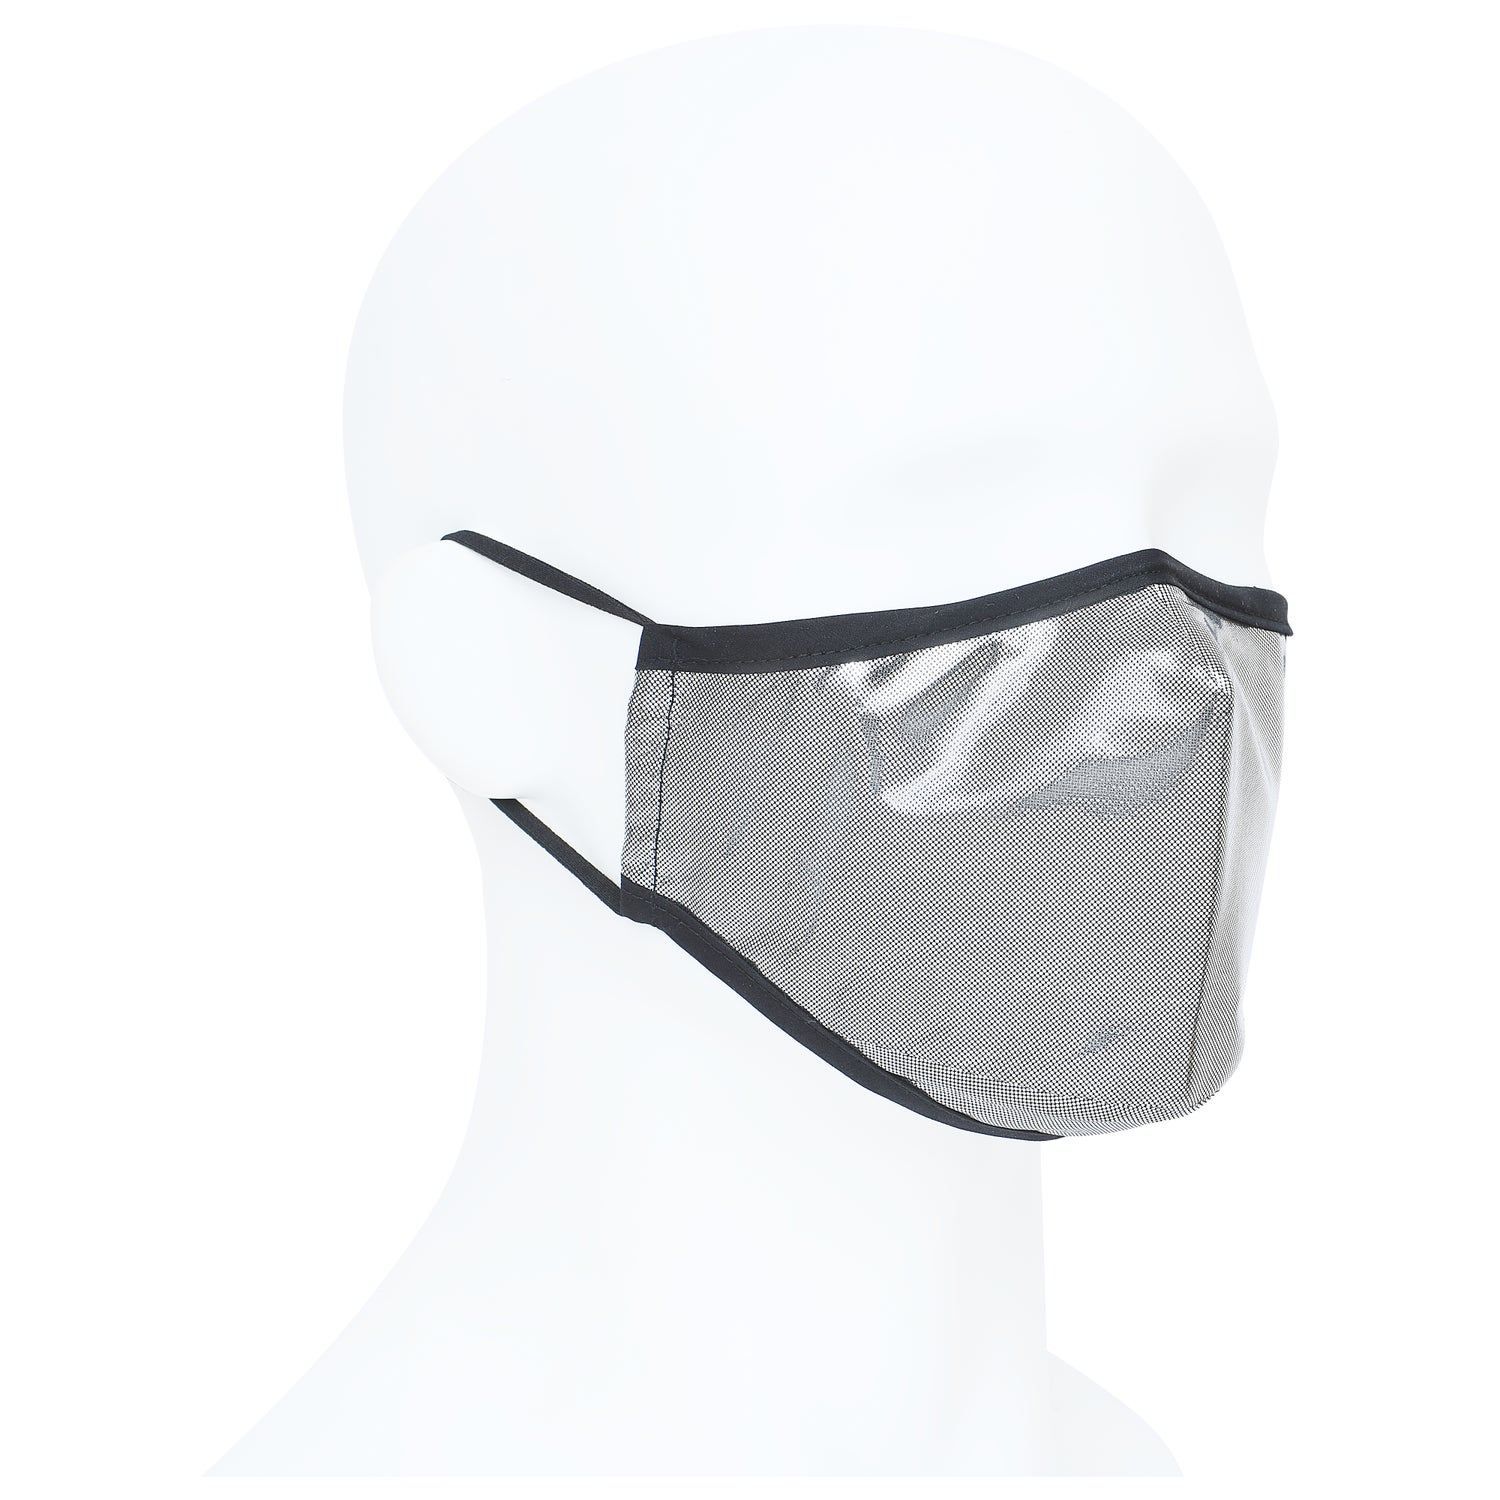 Image of Space silver Mask